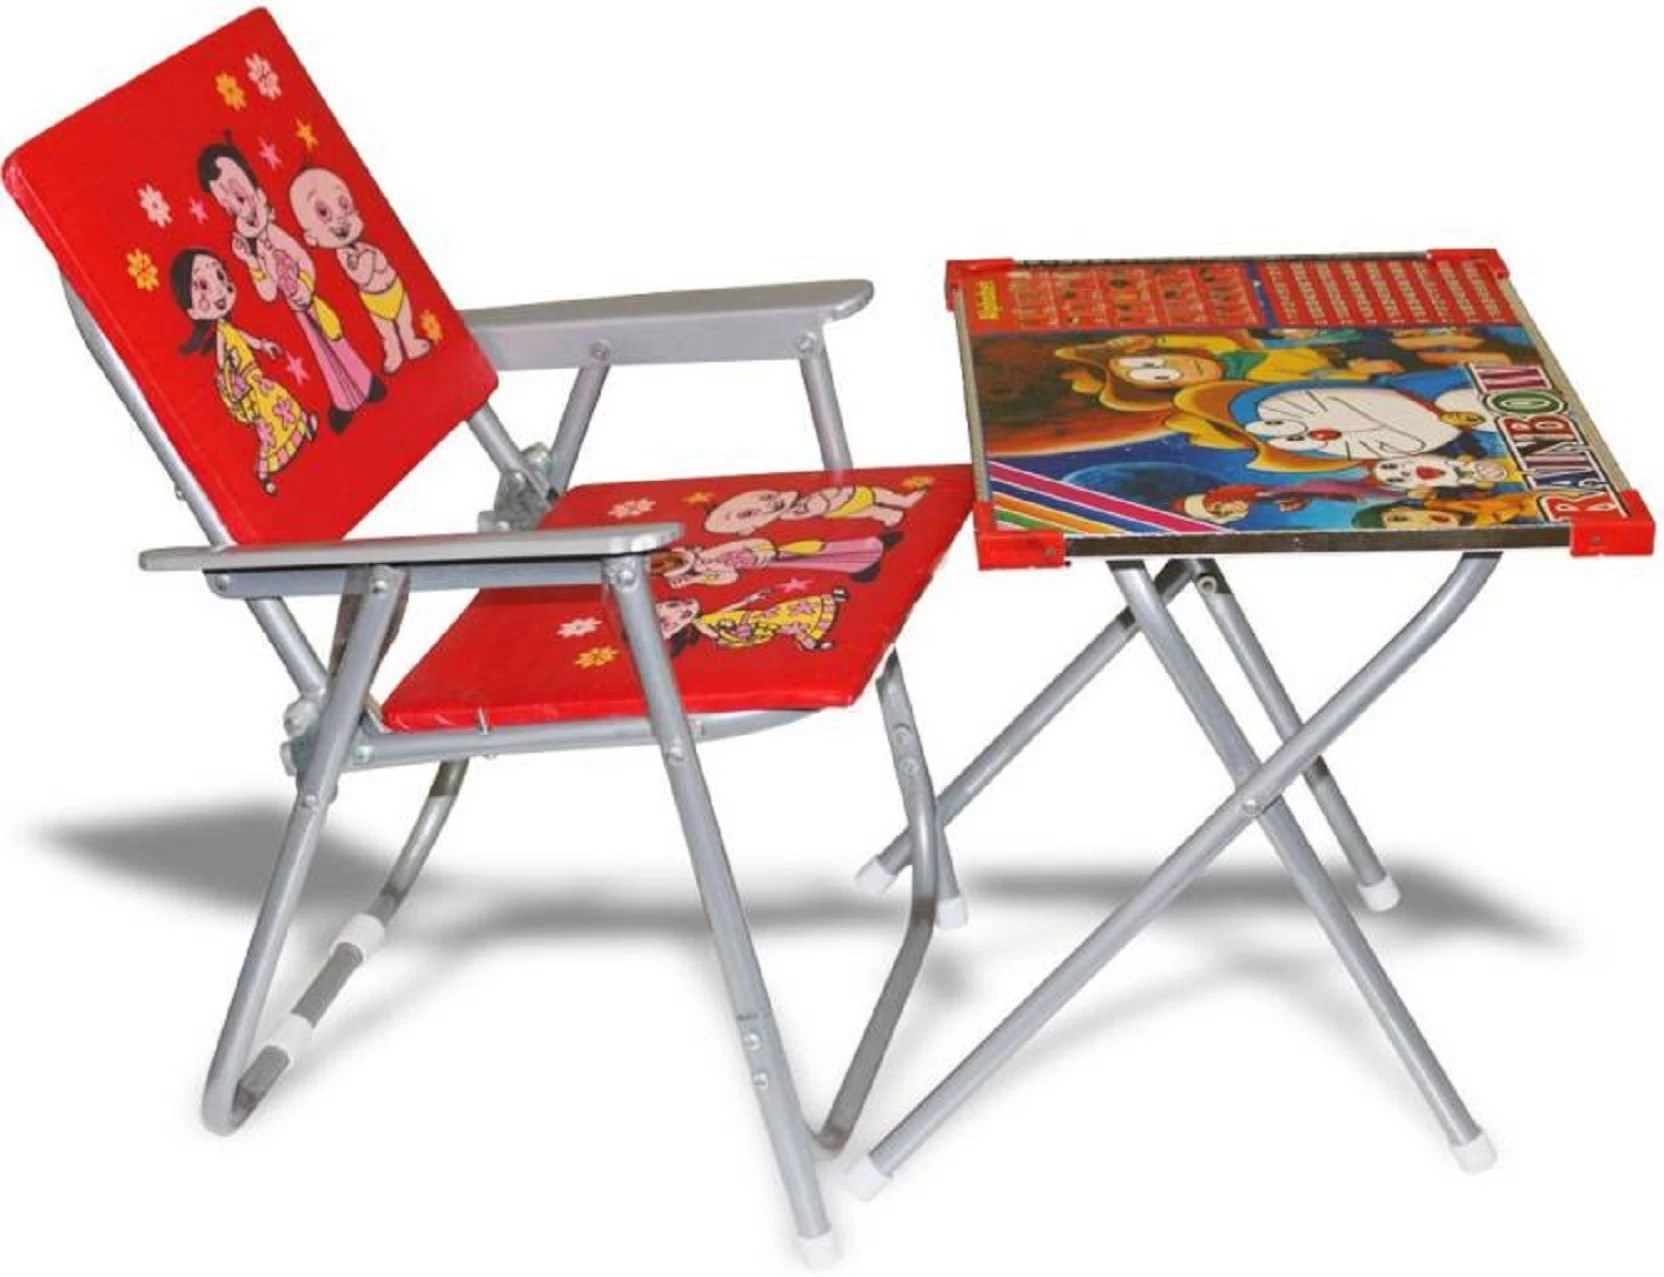 Red Desk Chair Imtion Kids Chair And Table Color Red Use Multi Purpose Kids For 2 5 Years Only Solid Wood Desk Chair